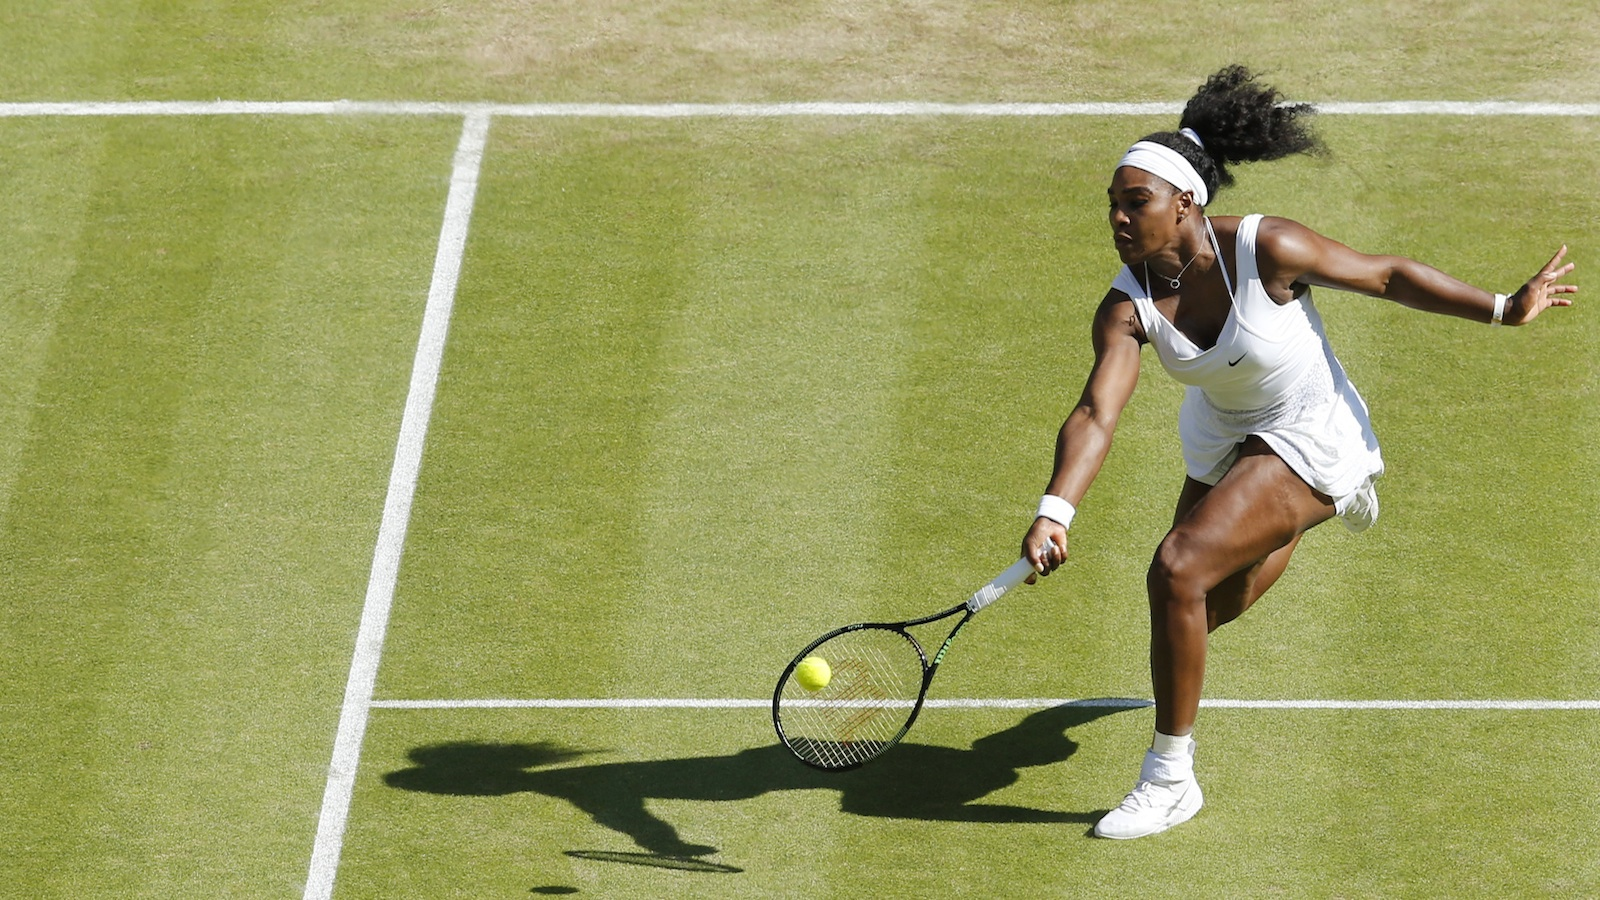 Williams has demonstrated herself to be the superior athlete time and time again. Why do we continue to demand proof?